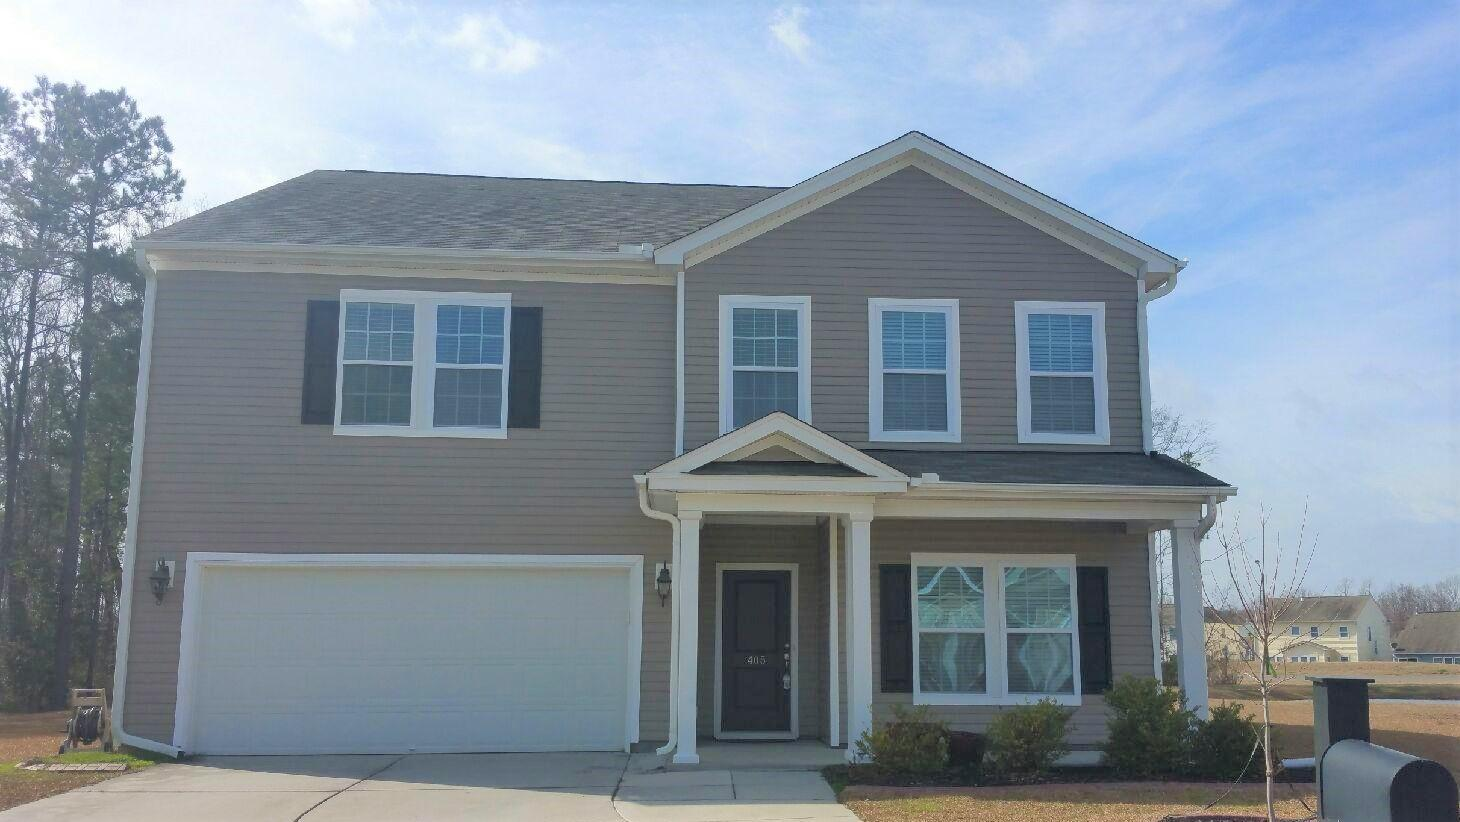 Photo of 405 Pomegranate Dr, Goose Creek, SC 29445